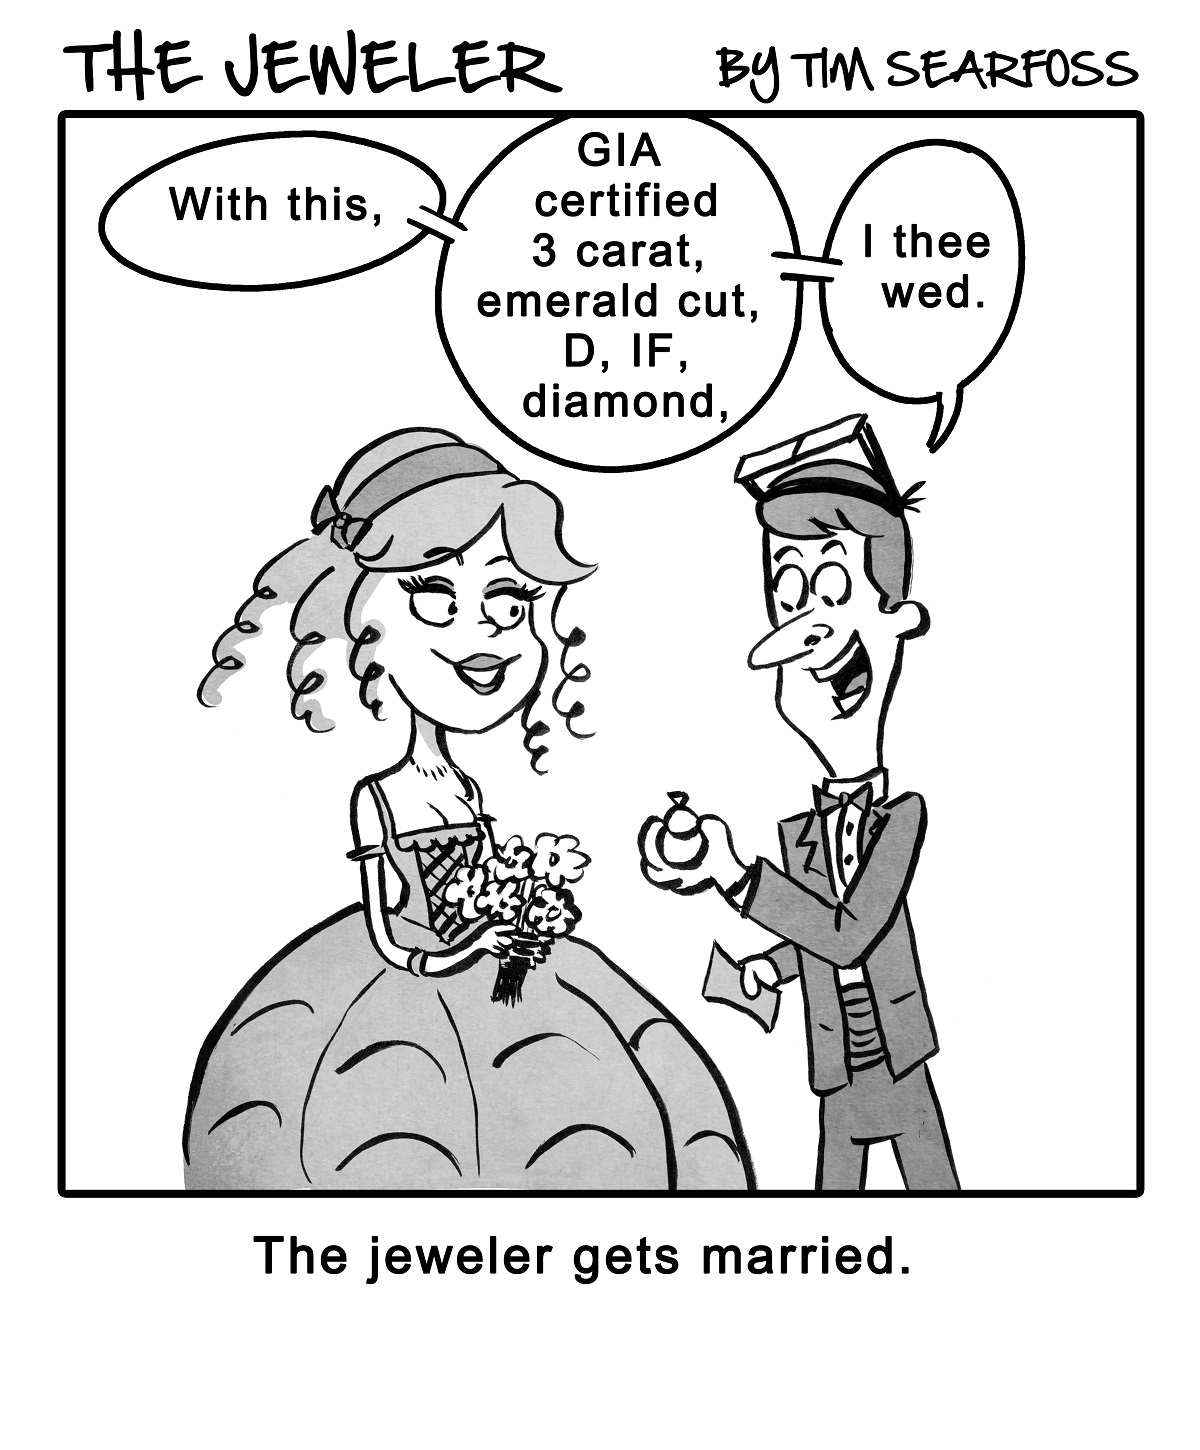 Cartoon Symbols Have Their Own Meanings For The Jeweler